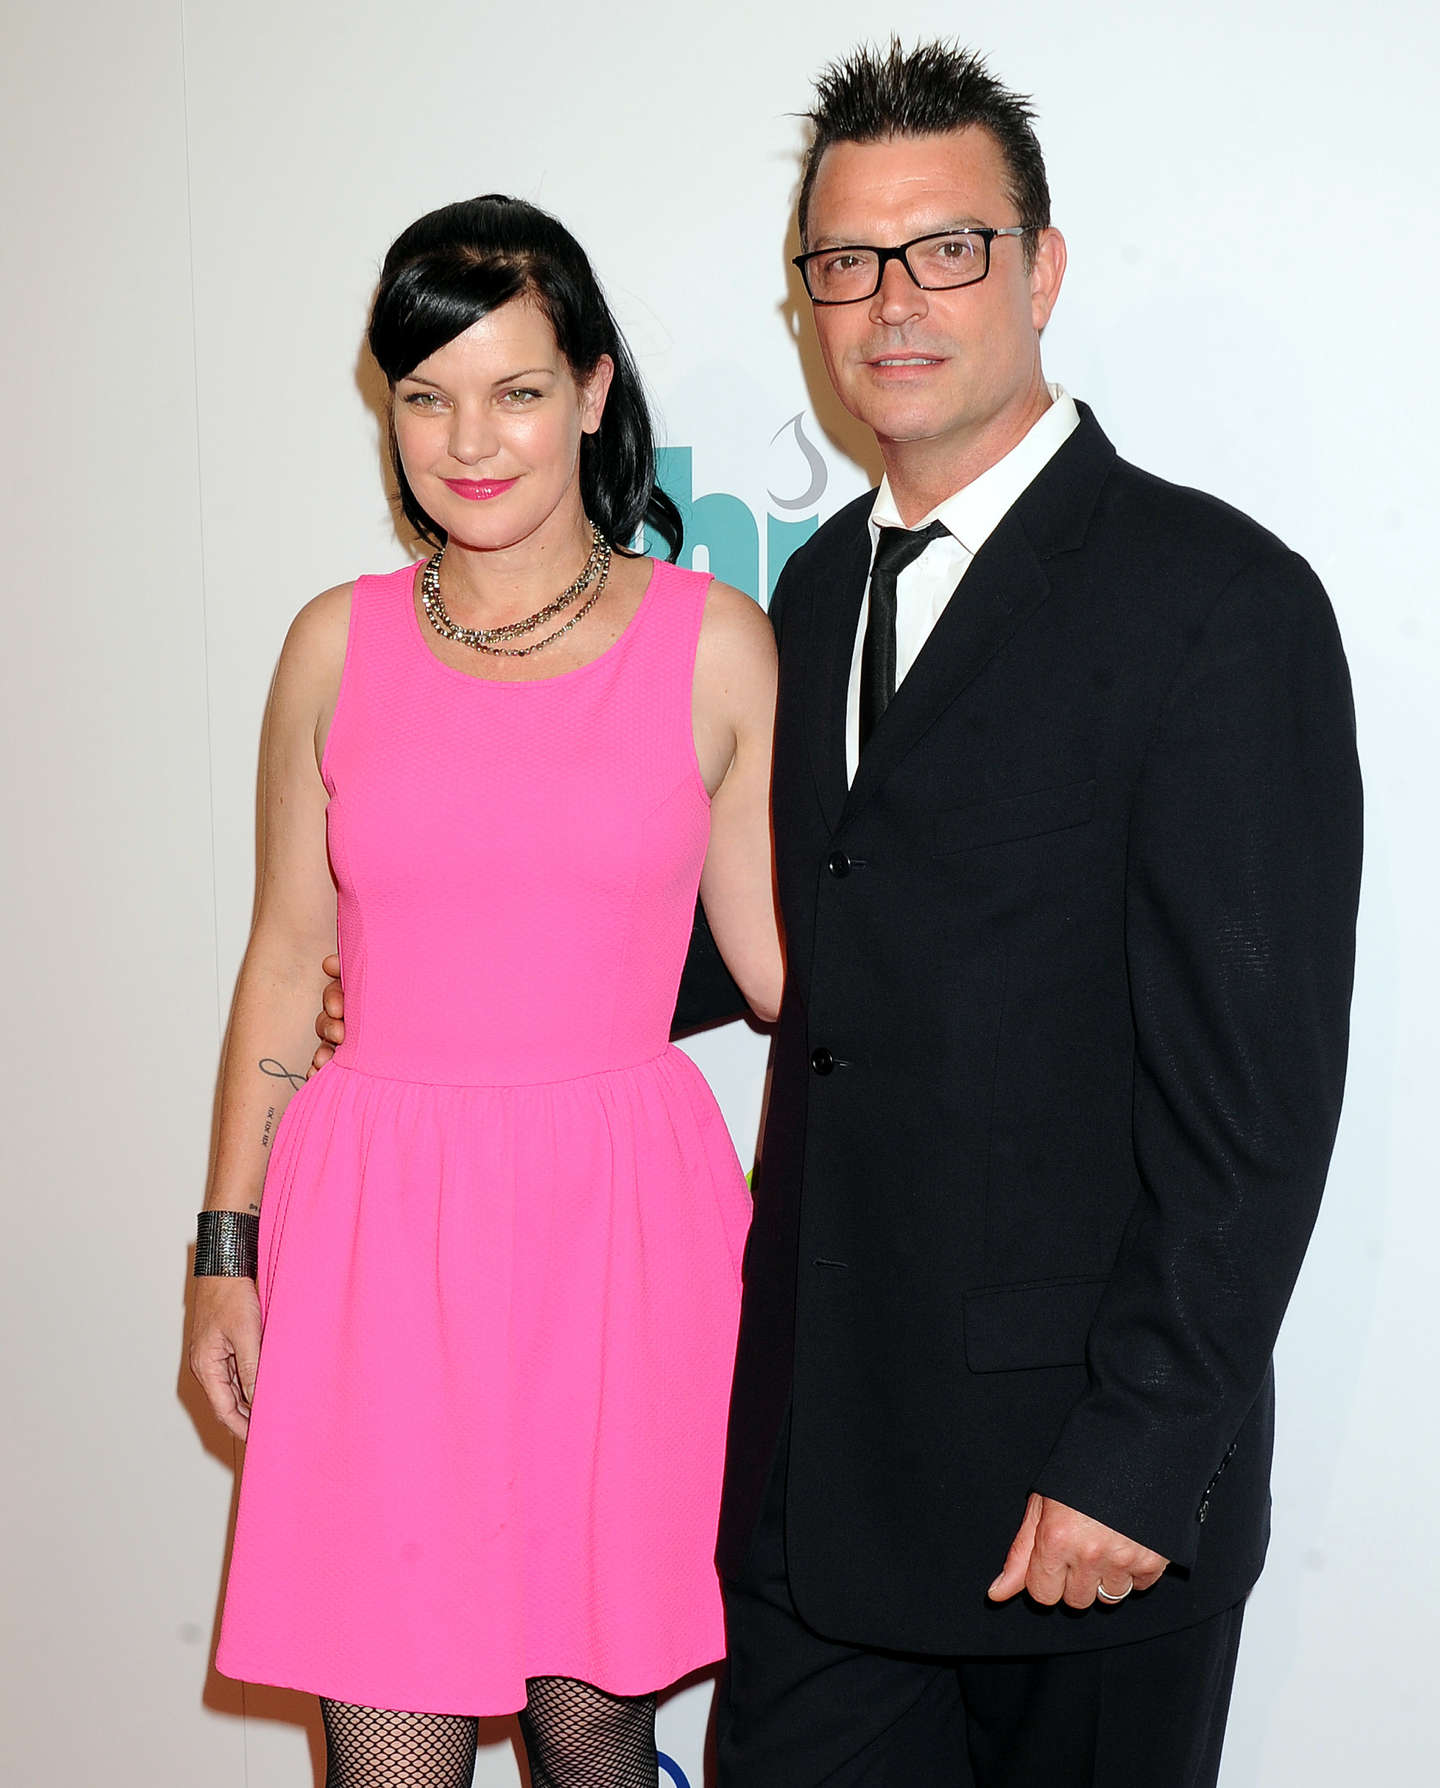 Pauley Perrette Annual Thirst Gala in Beverly Hills